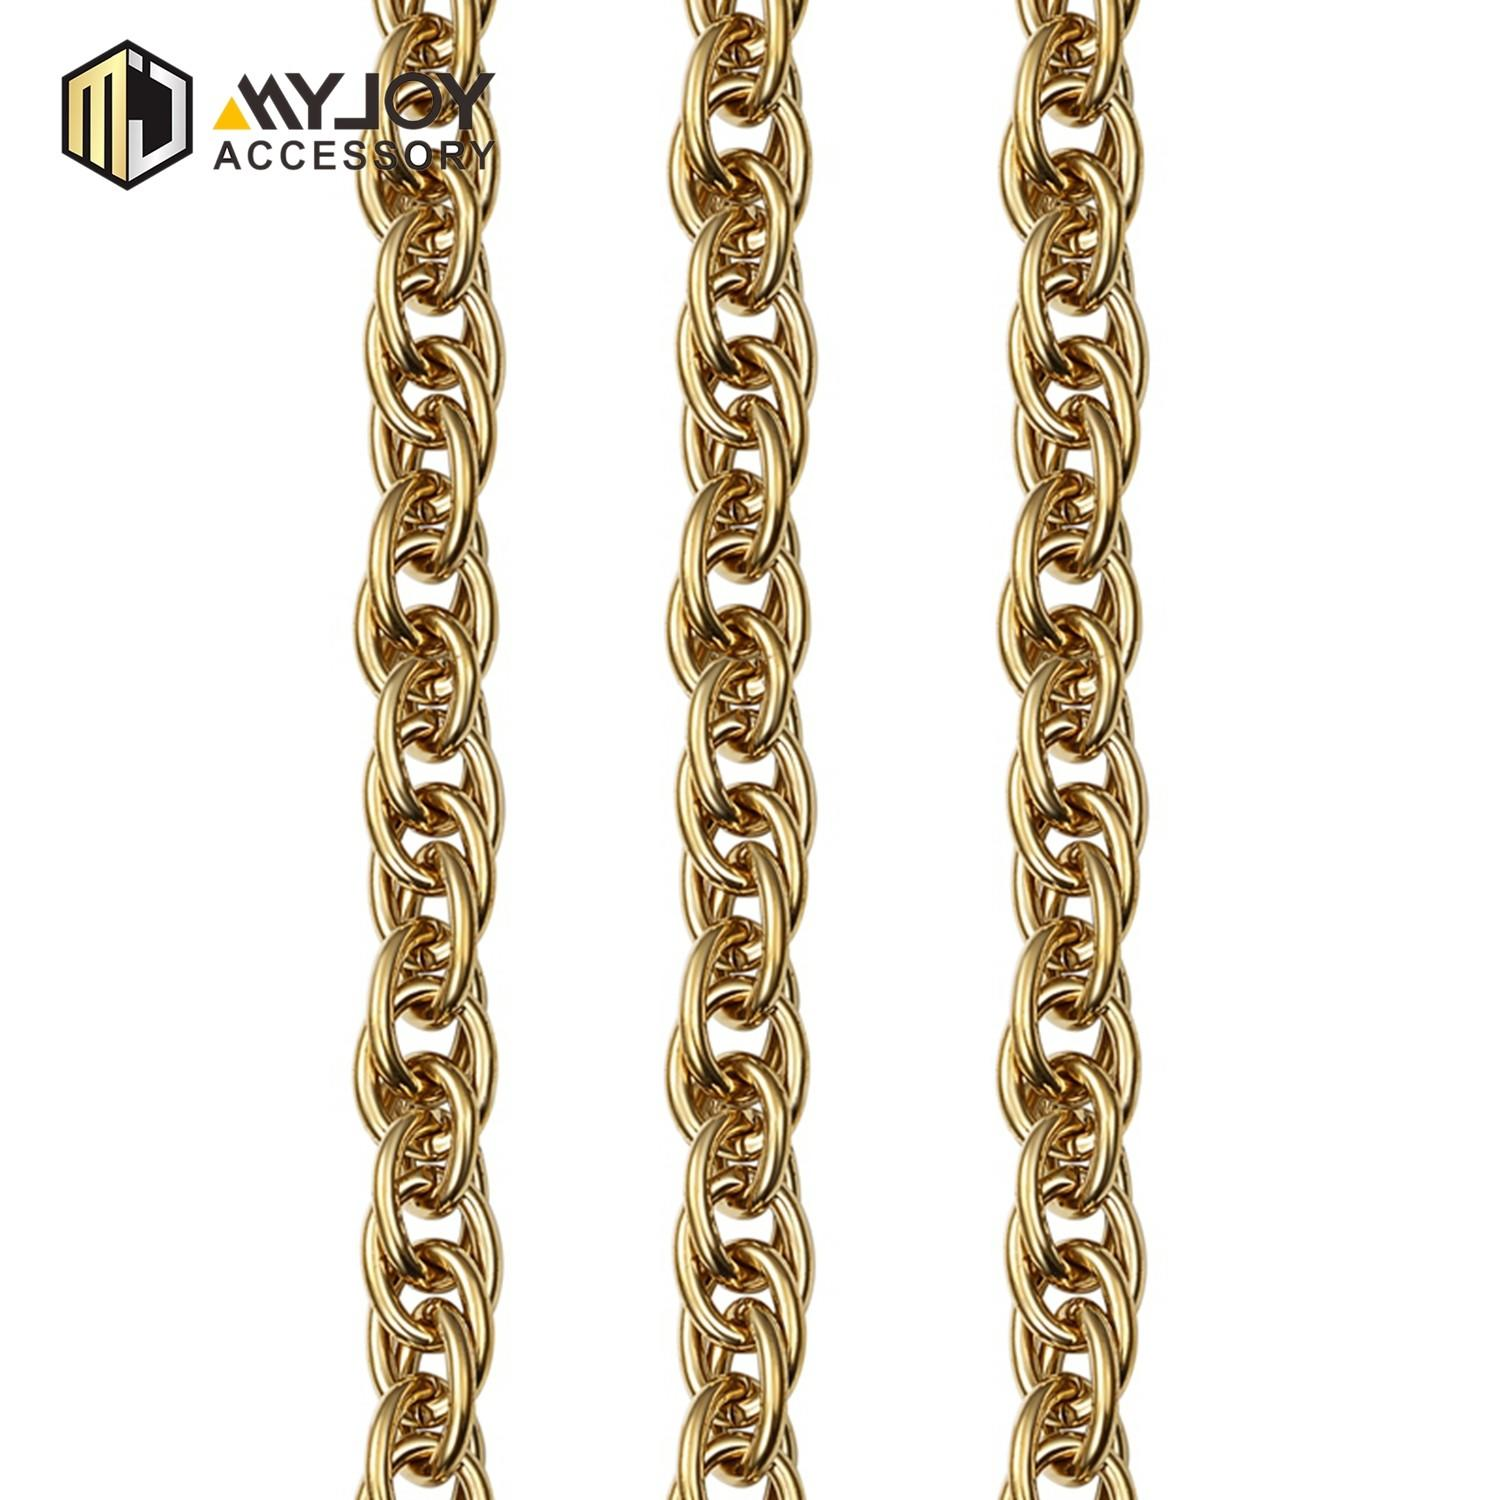 MYJOY Latest handbag strap chain stylish for handbag-2